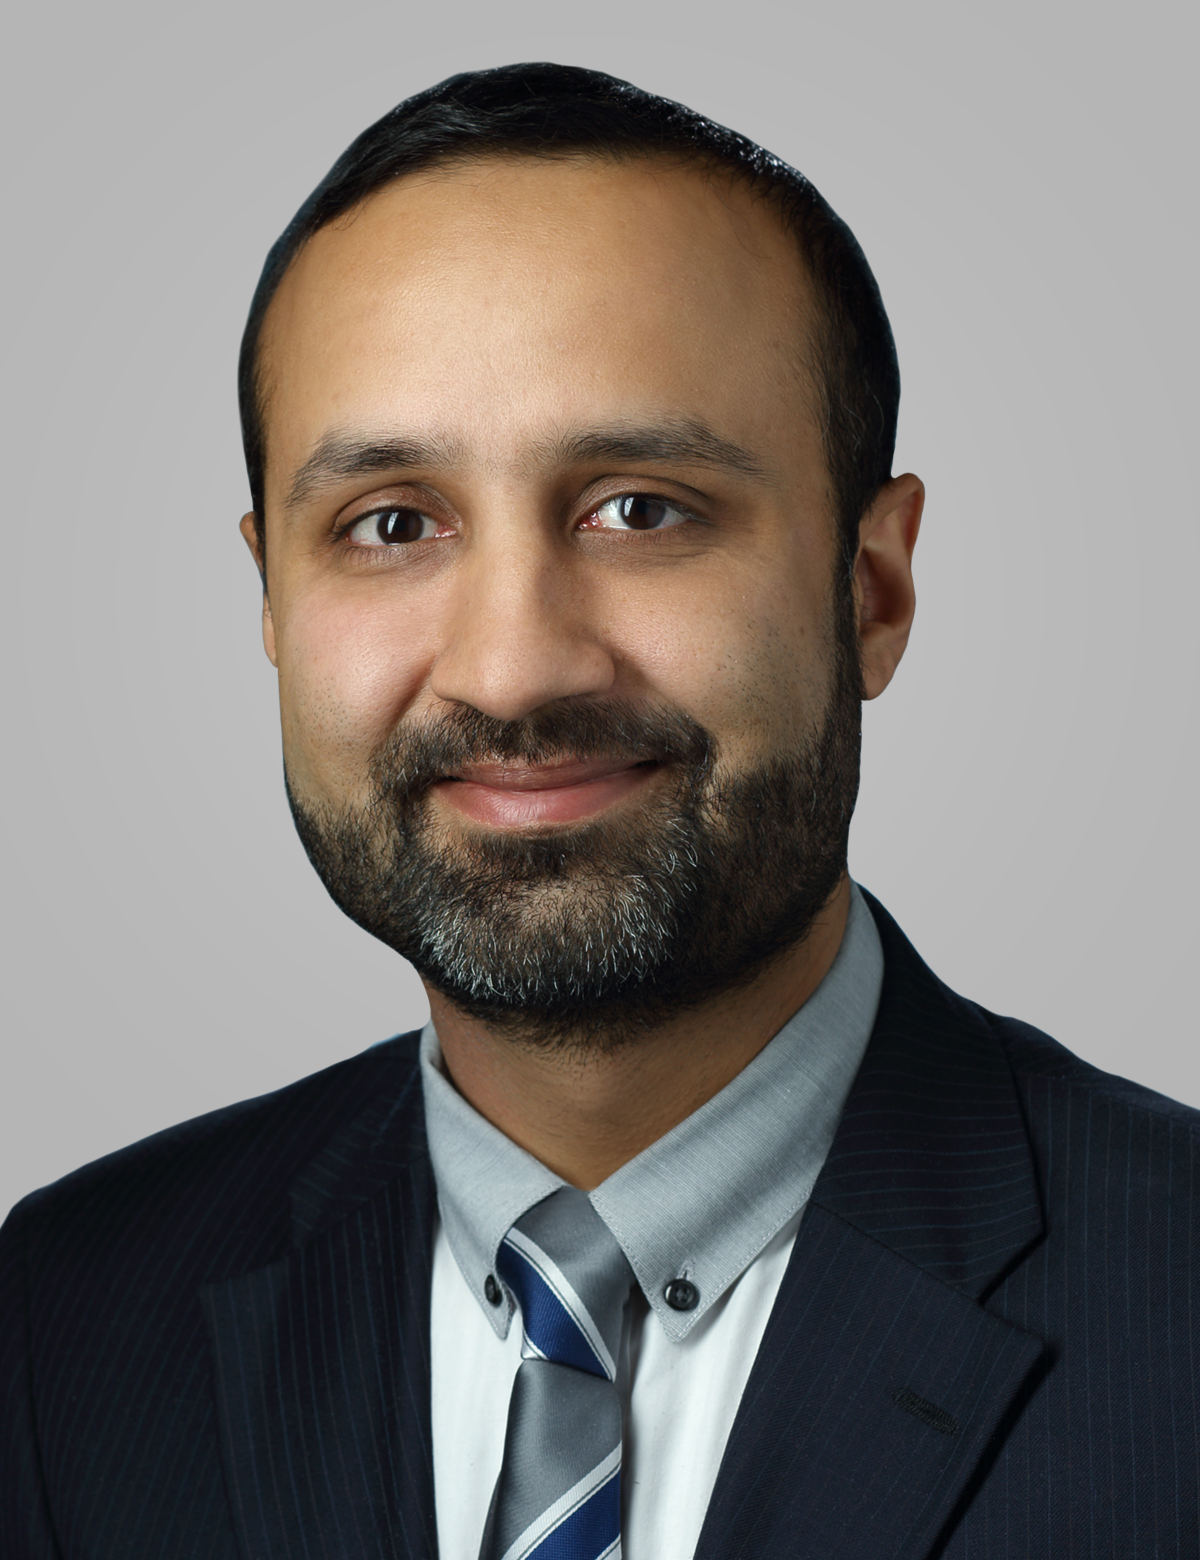 Hamid Abdollahi, MD